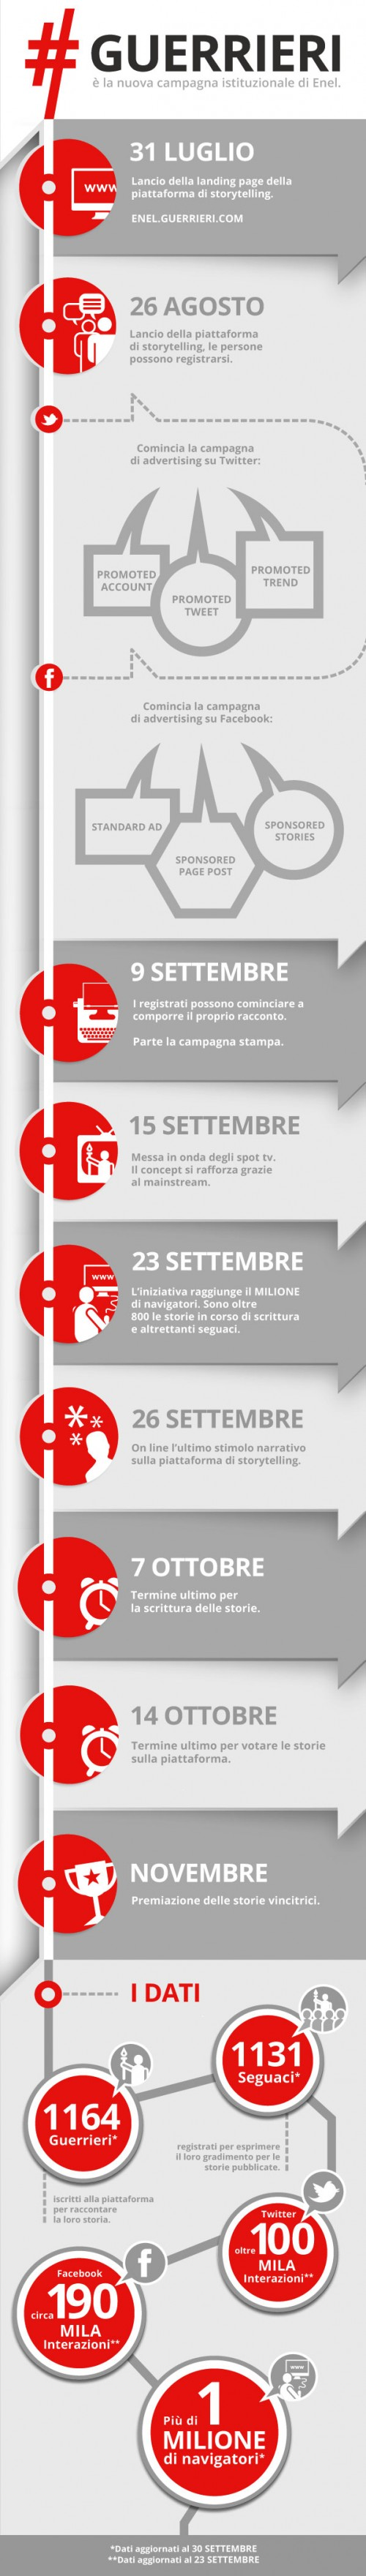 infografica-web-guerrieri-red